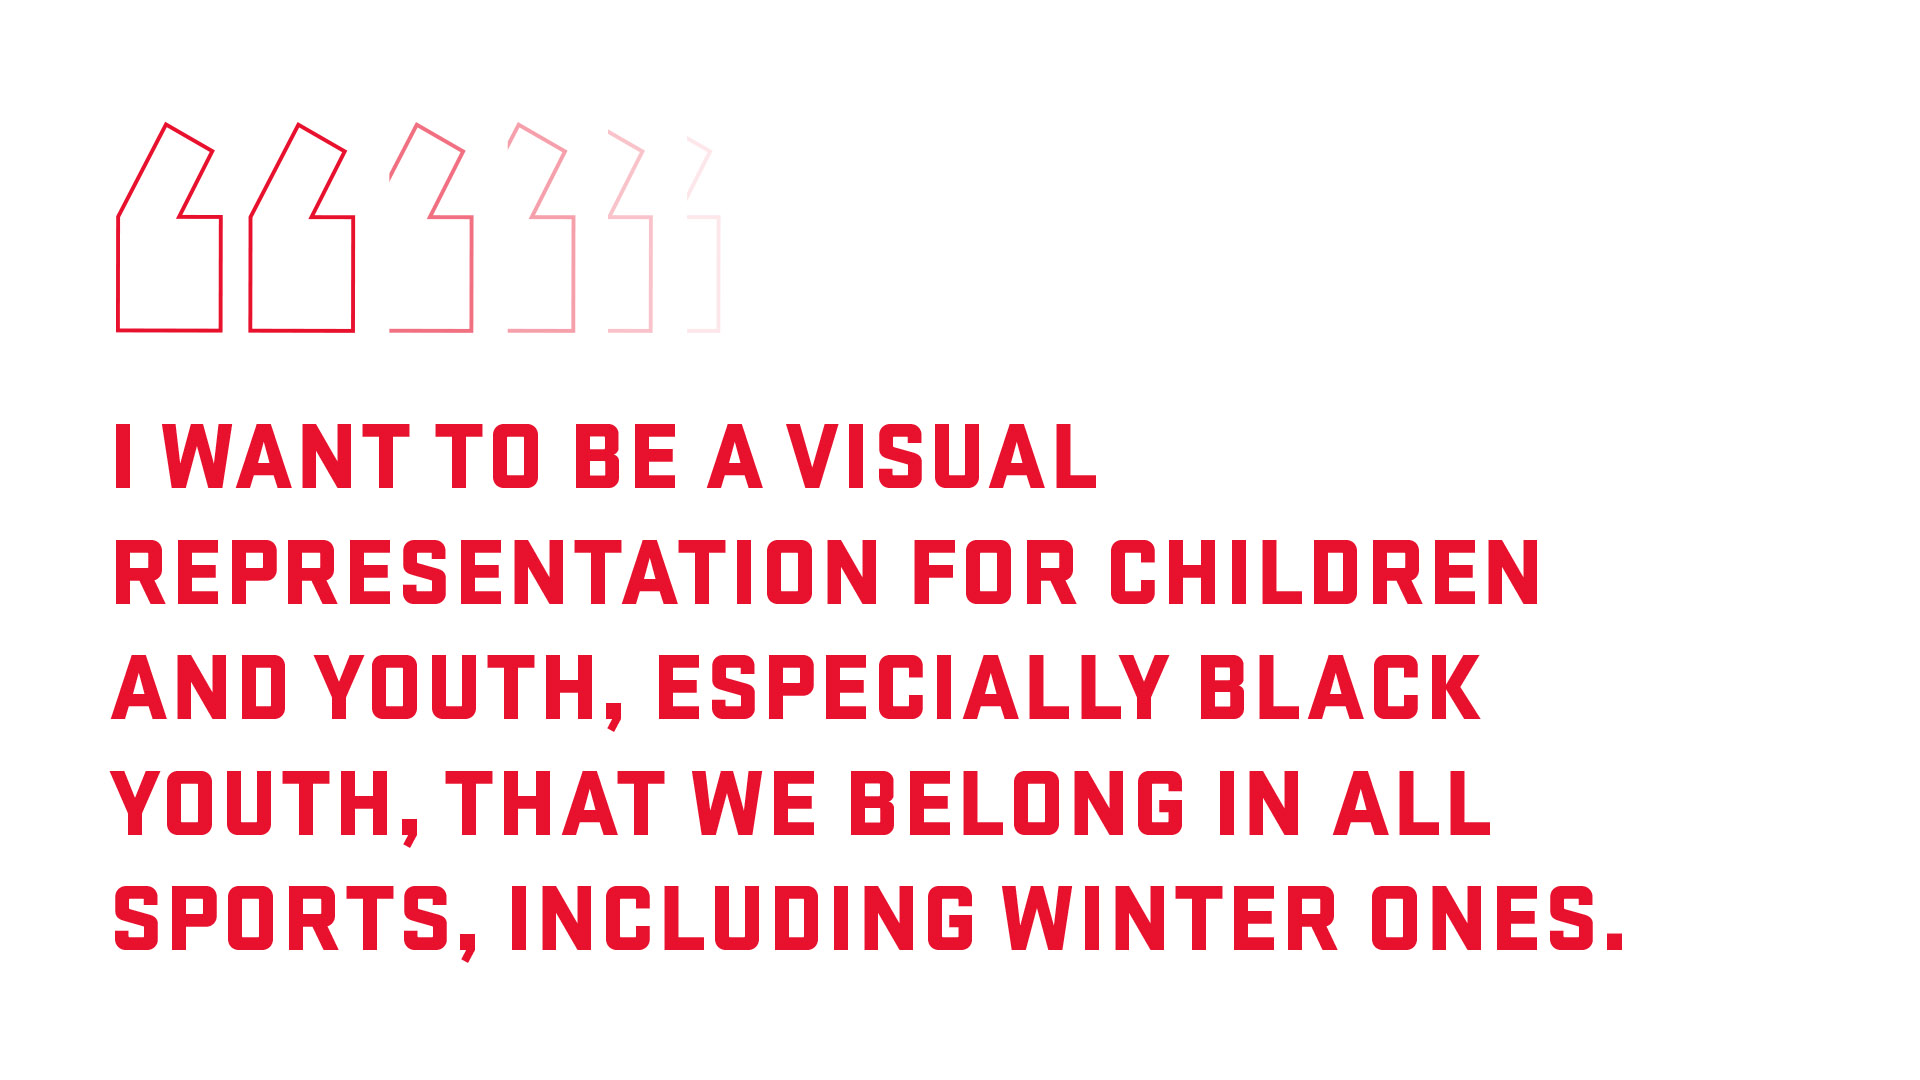 Block quote: I want to be a visual representation for children and youth, especially Black youth, that we belong in all sports, including winter ones.